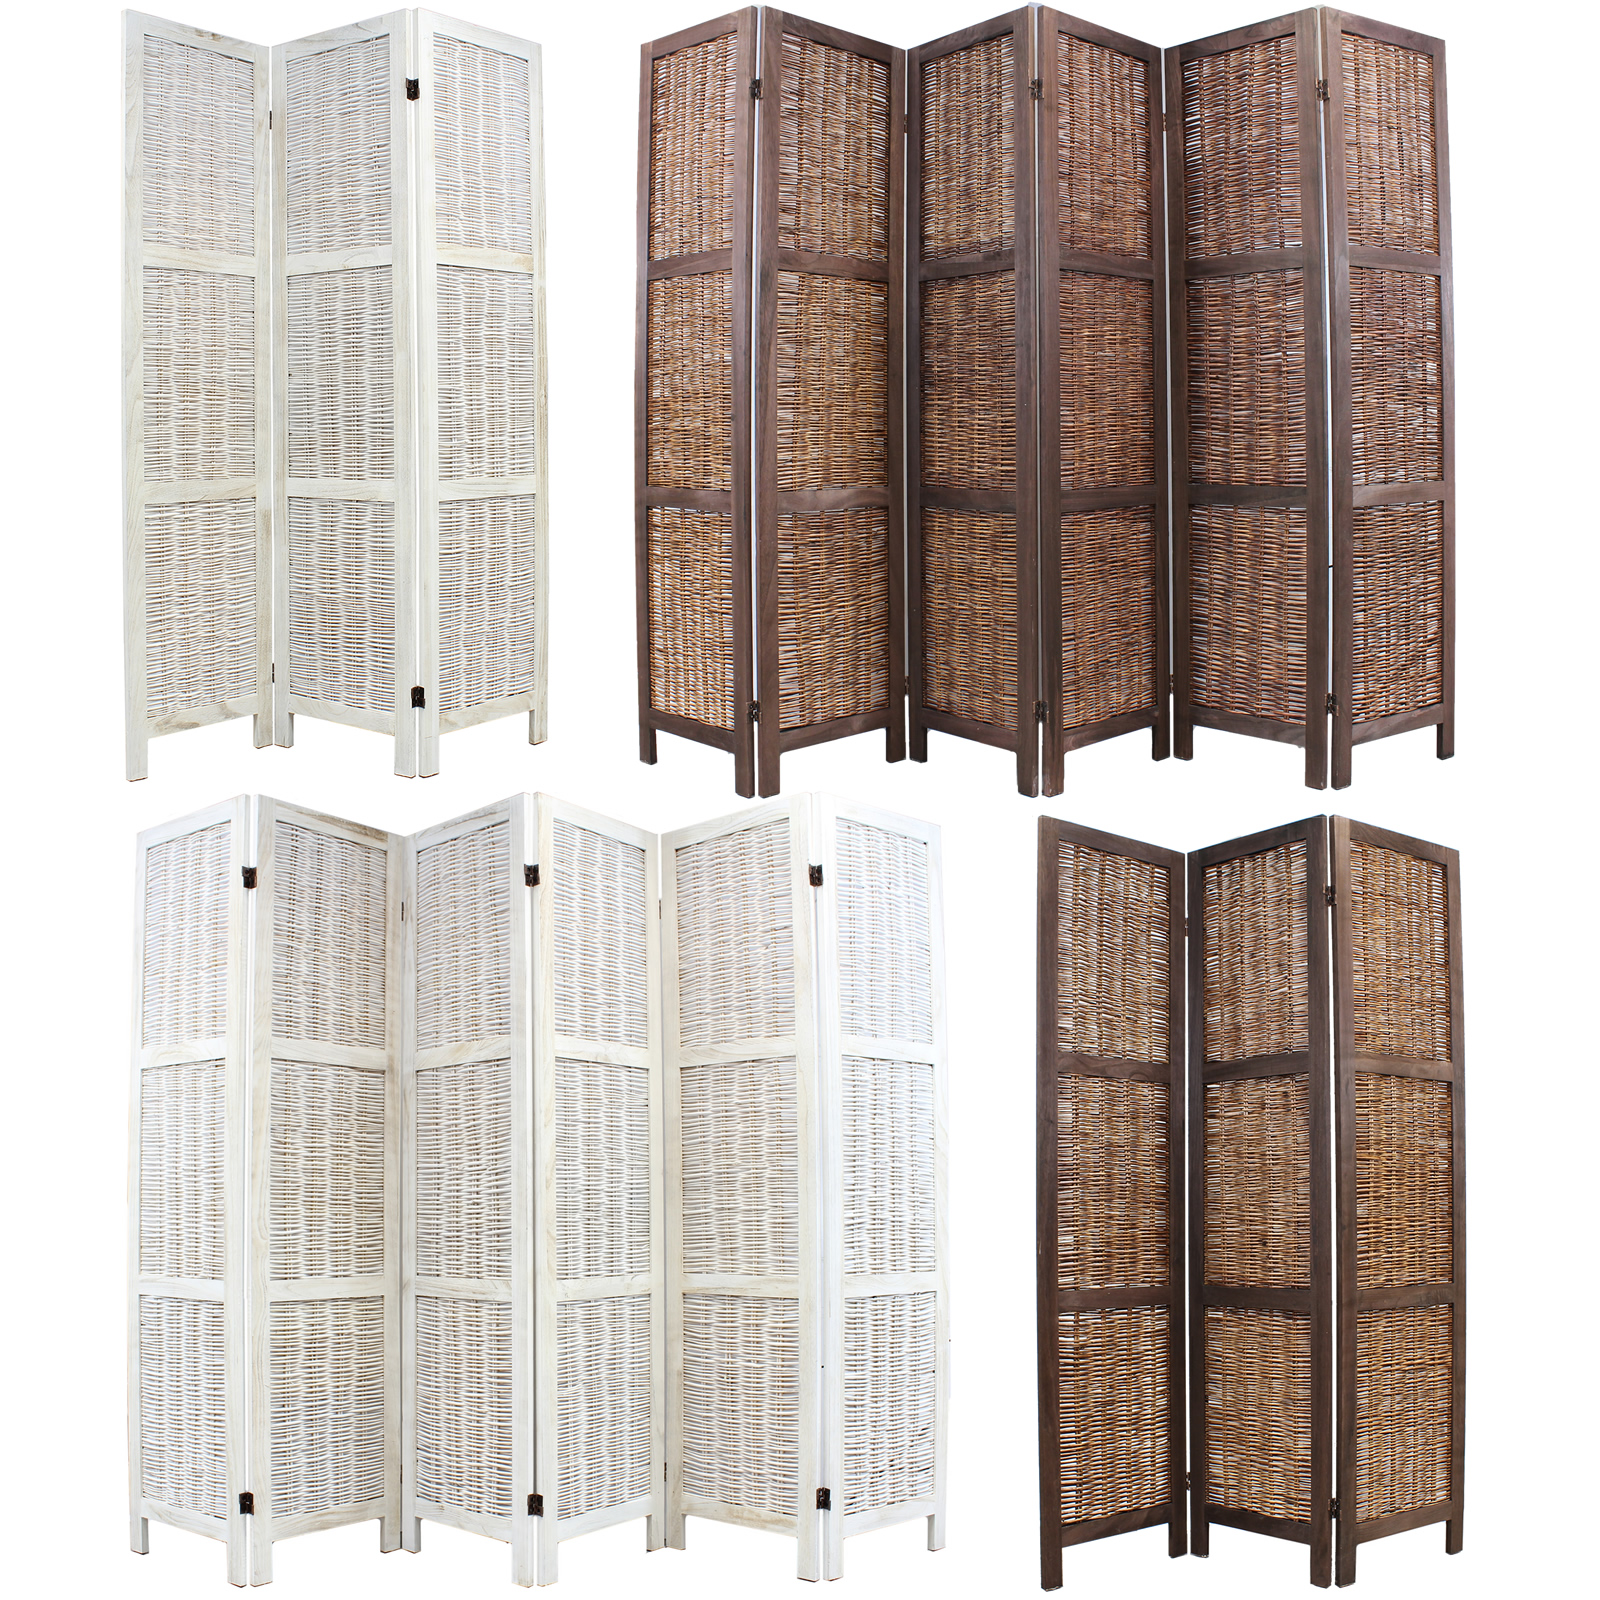 wooden framed wicker room divider privacy screen partition shabby chic